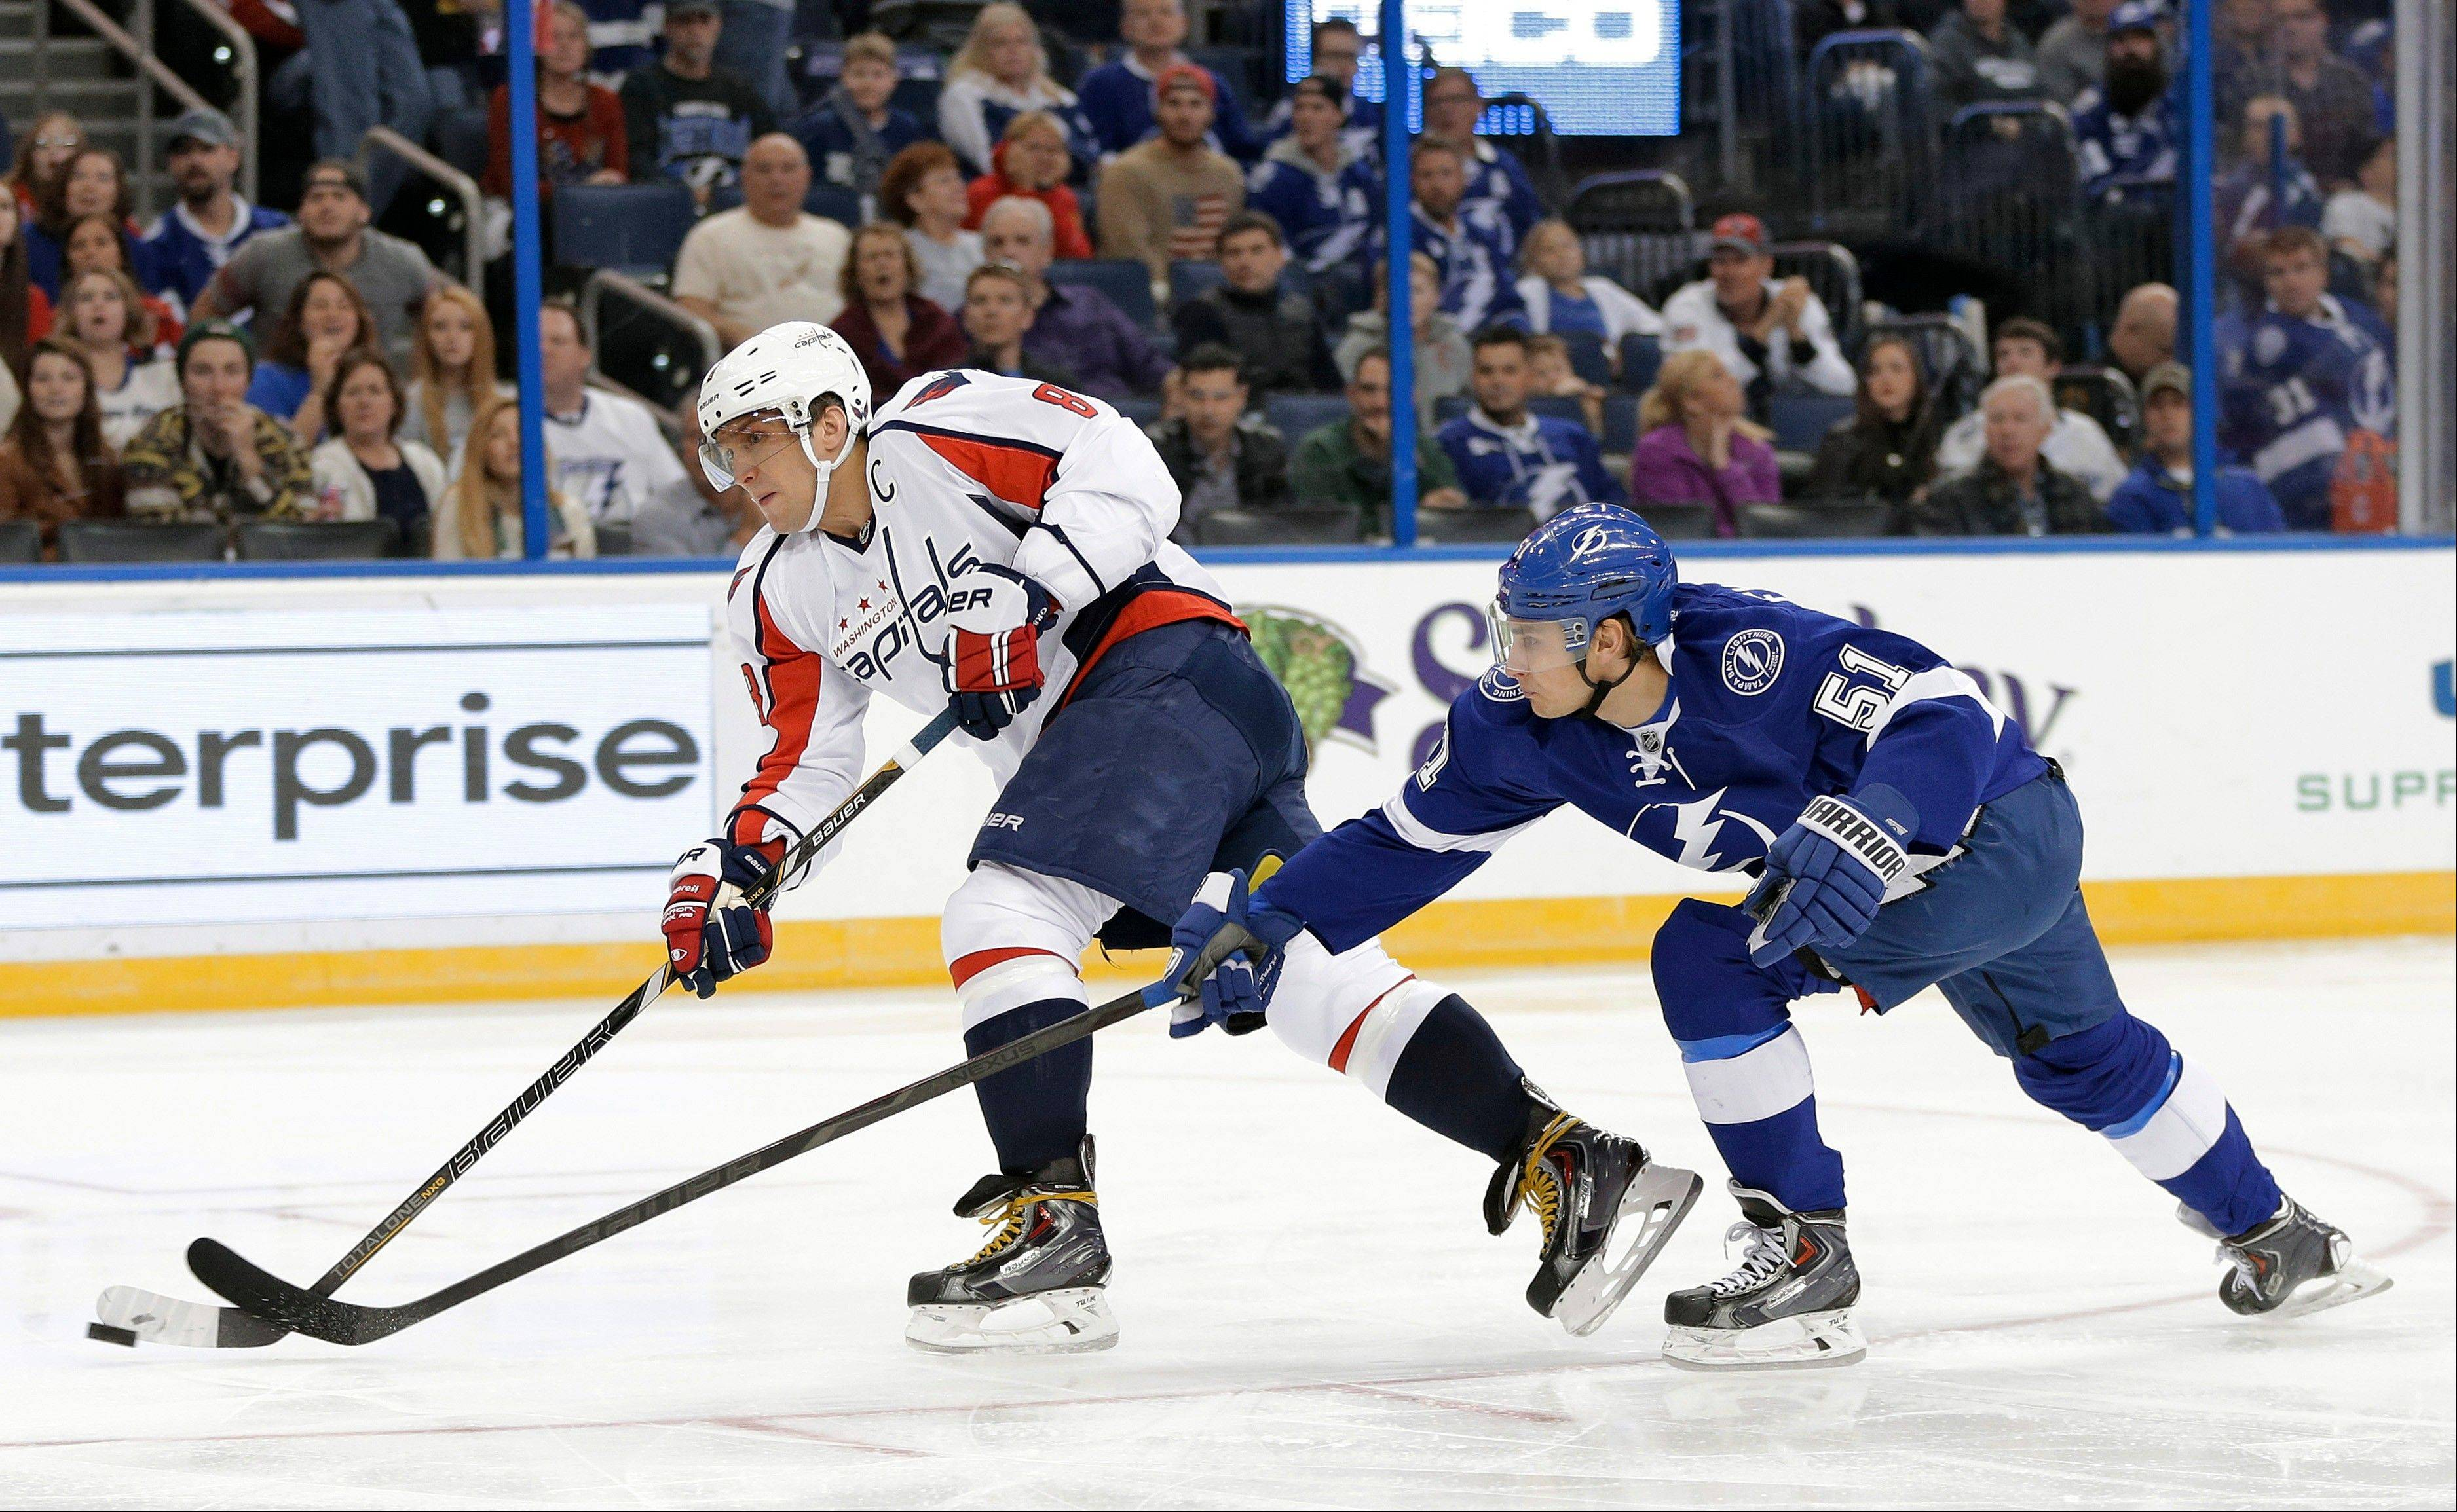 Washington Capitals right wing Alex Ovechkin (8), of Russia, fires the puck on goal after getting past Tampa Bay Lightning center Valtteri Filppula (51), of Finland, during the first period of an NHL hockey game Thursday, Jan. 9, 2014, in Tampa, Fla. (AP Photo/Chris O'Meara)